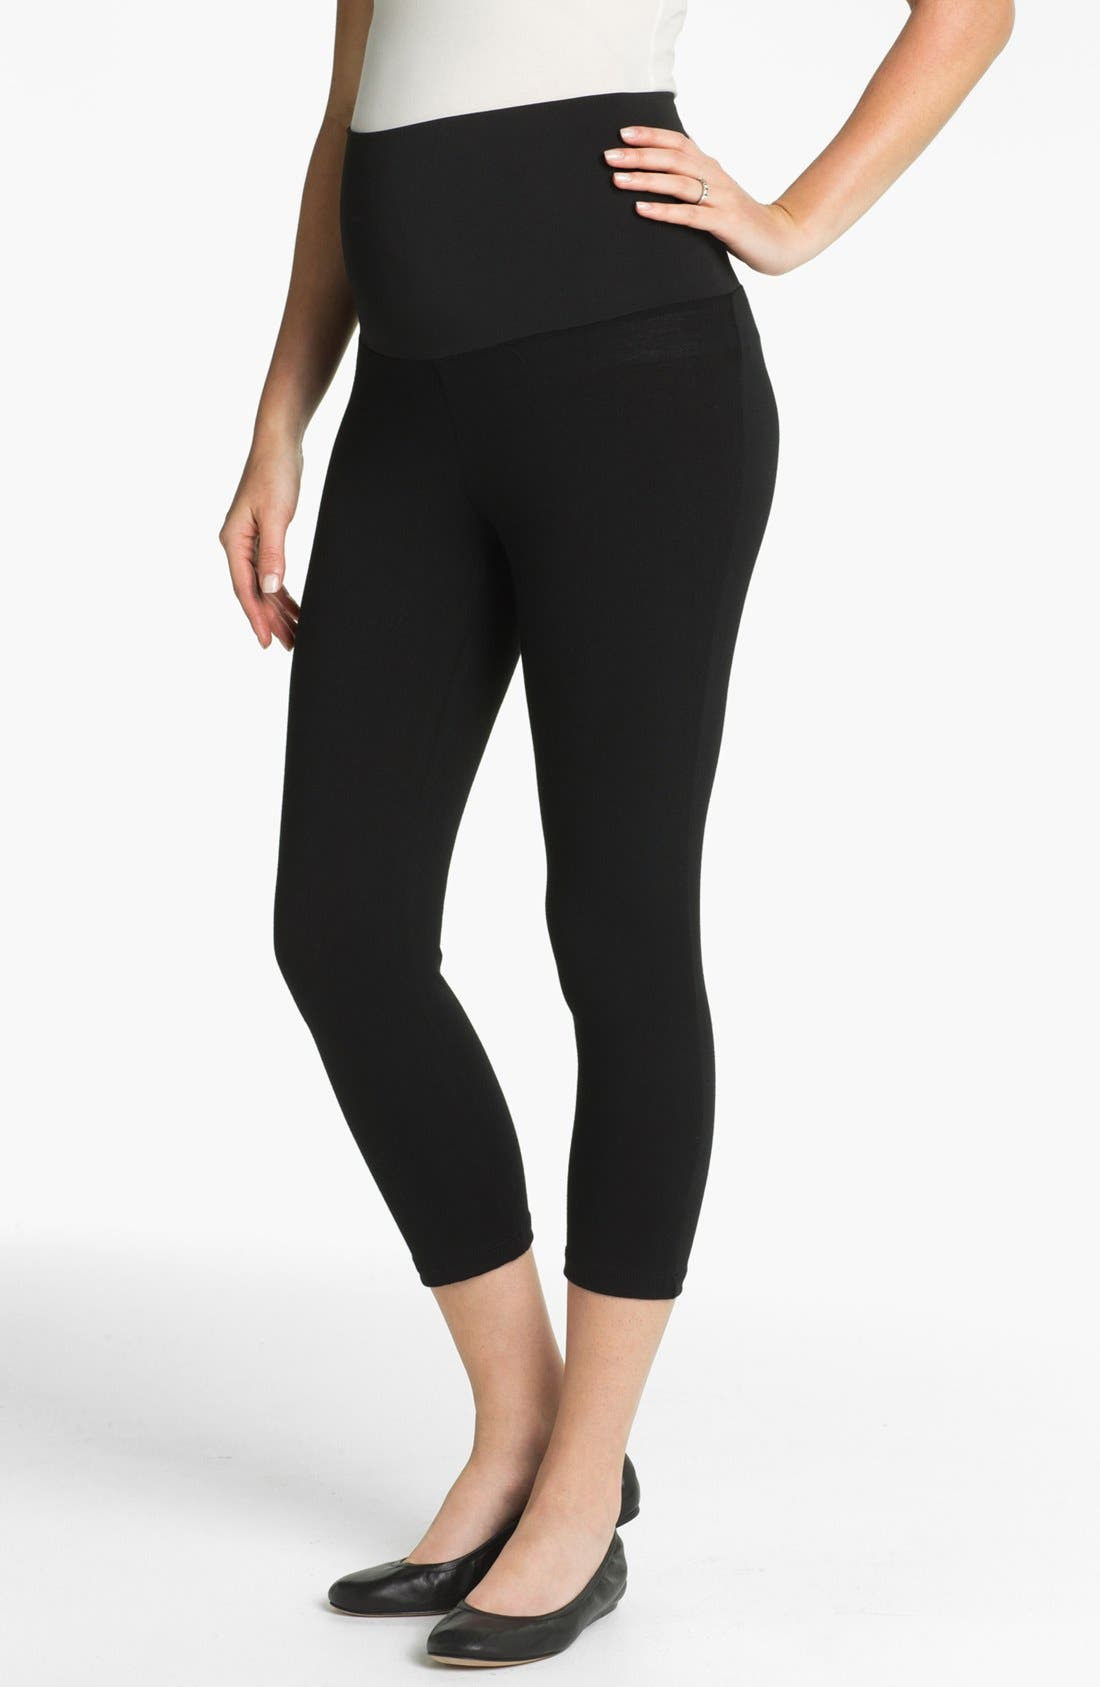 Alternate Image 1 Selected - Maternal America Post Support Crop Maternity Leggings